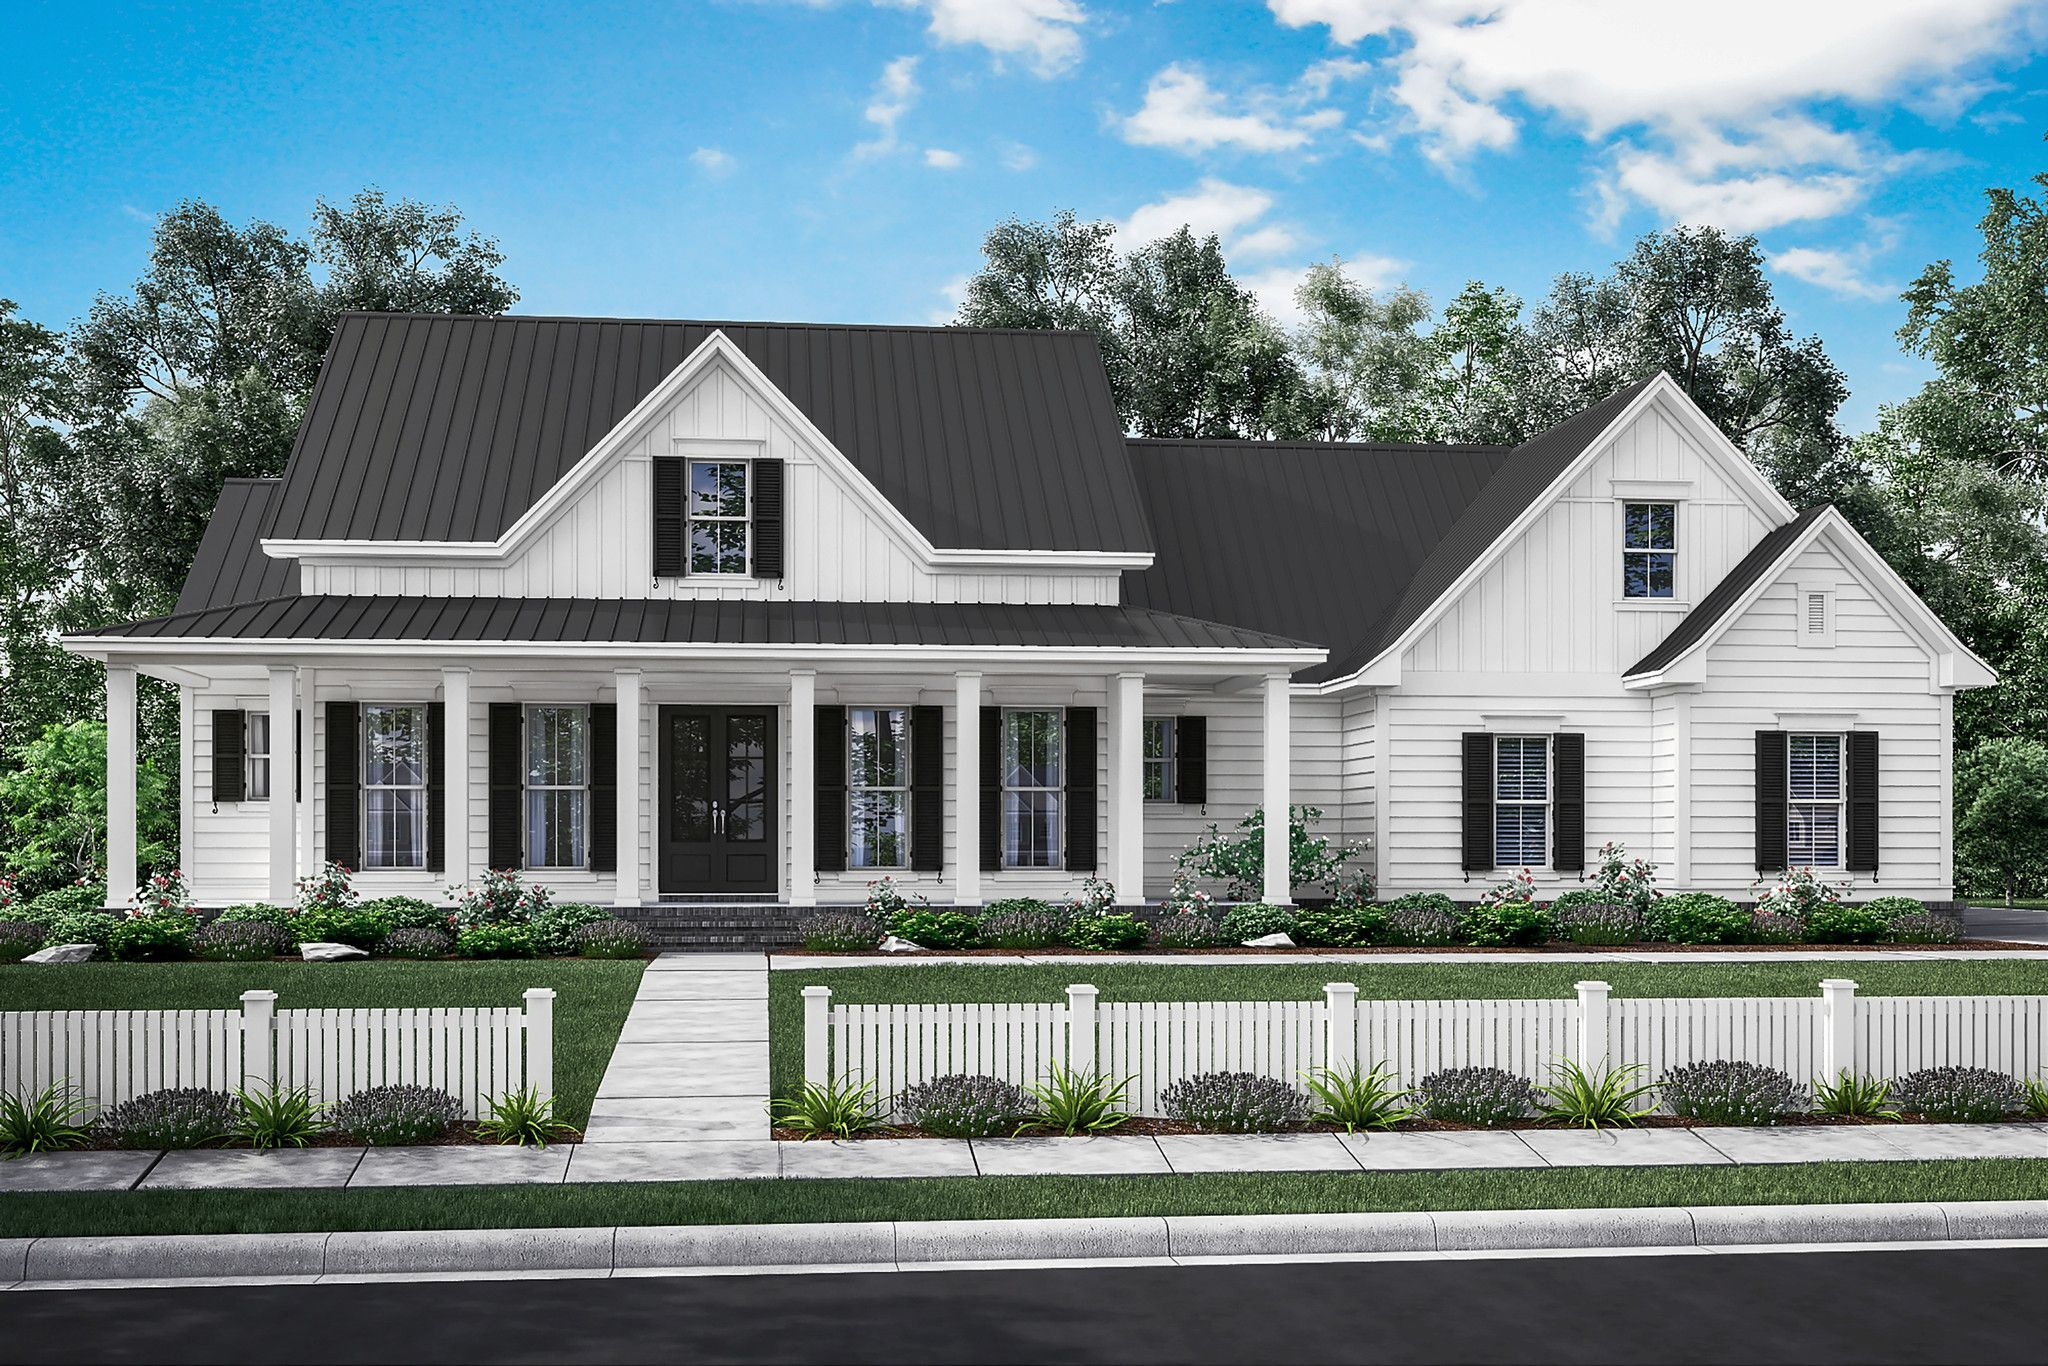 Amazing Beauty This house plan design features